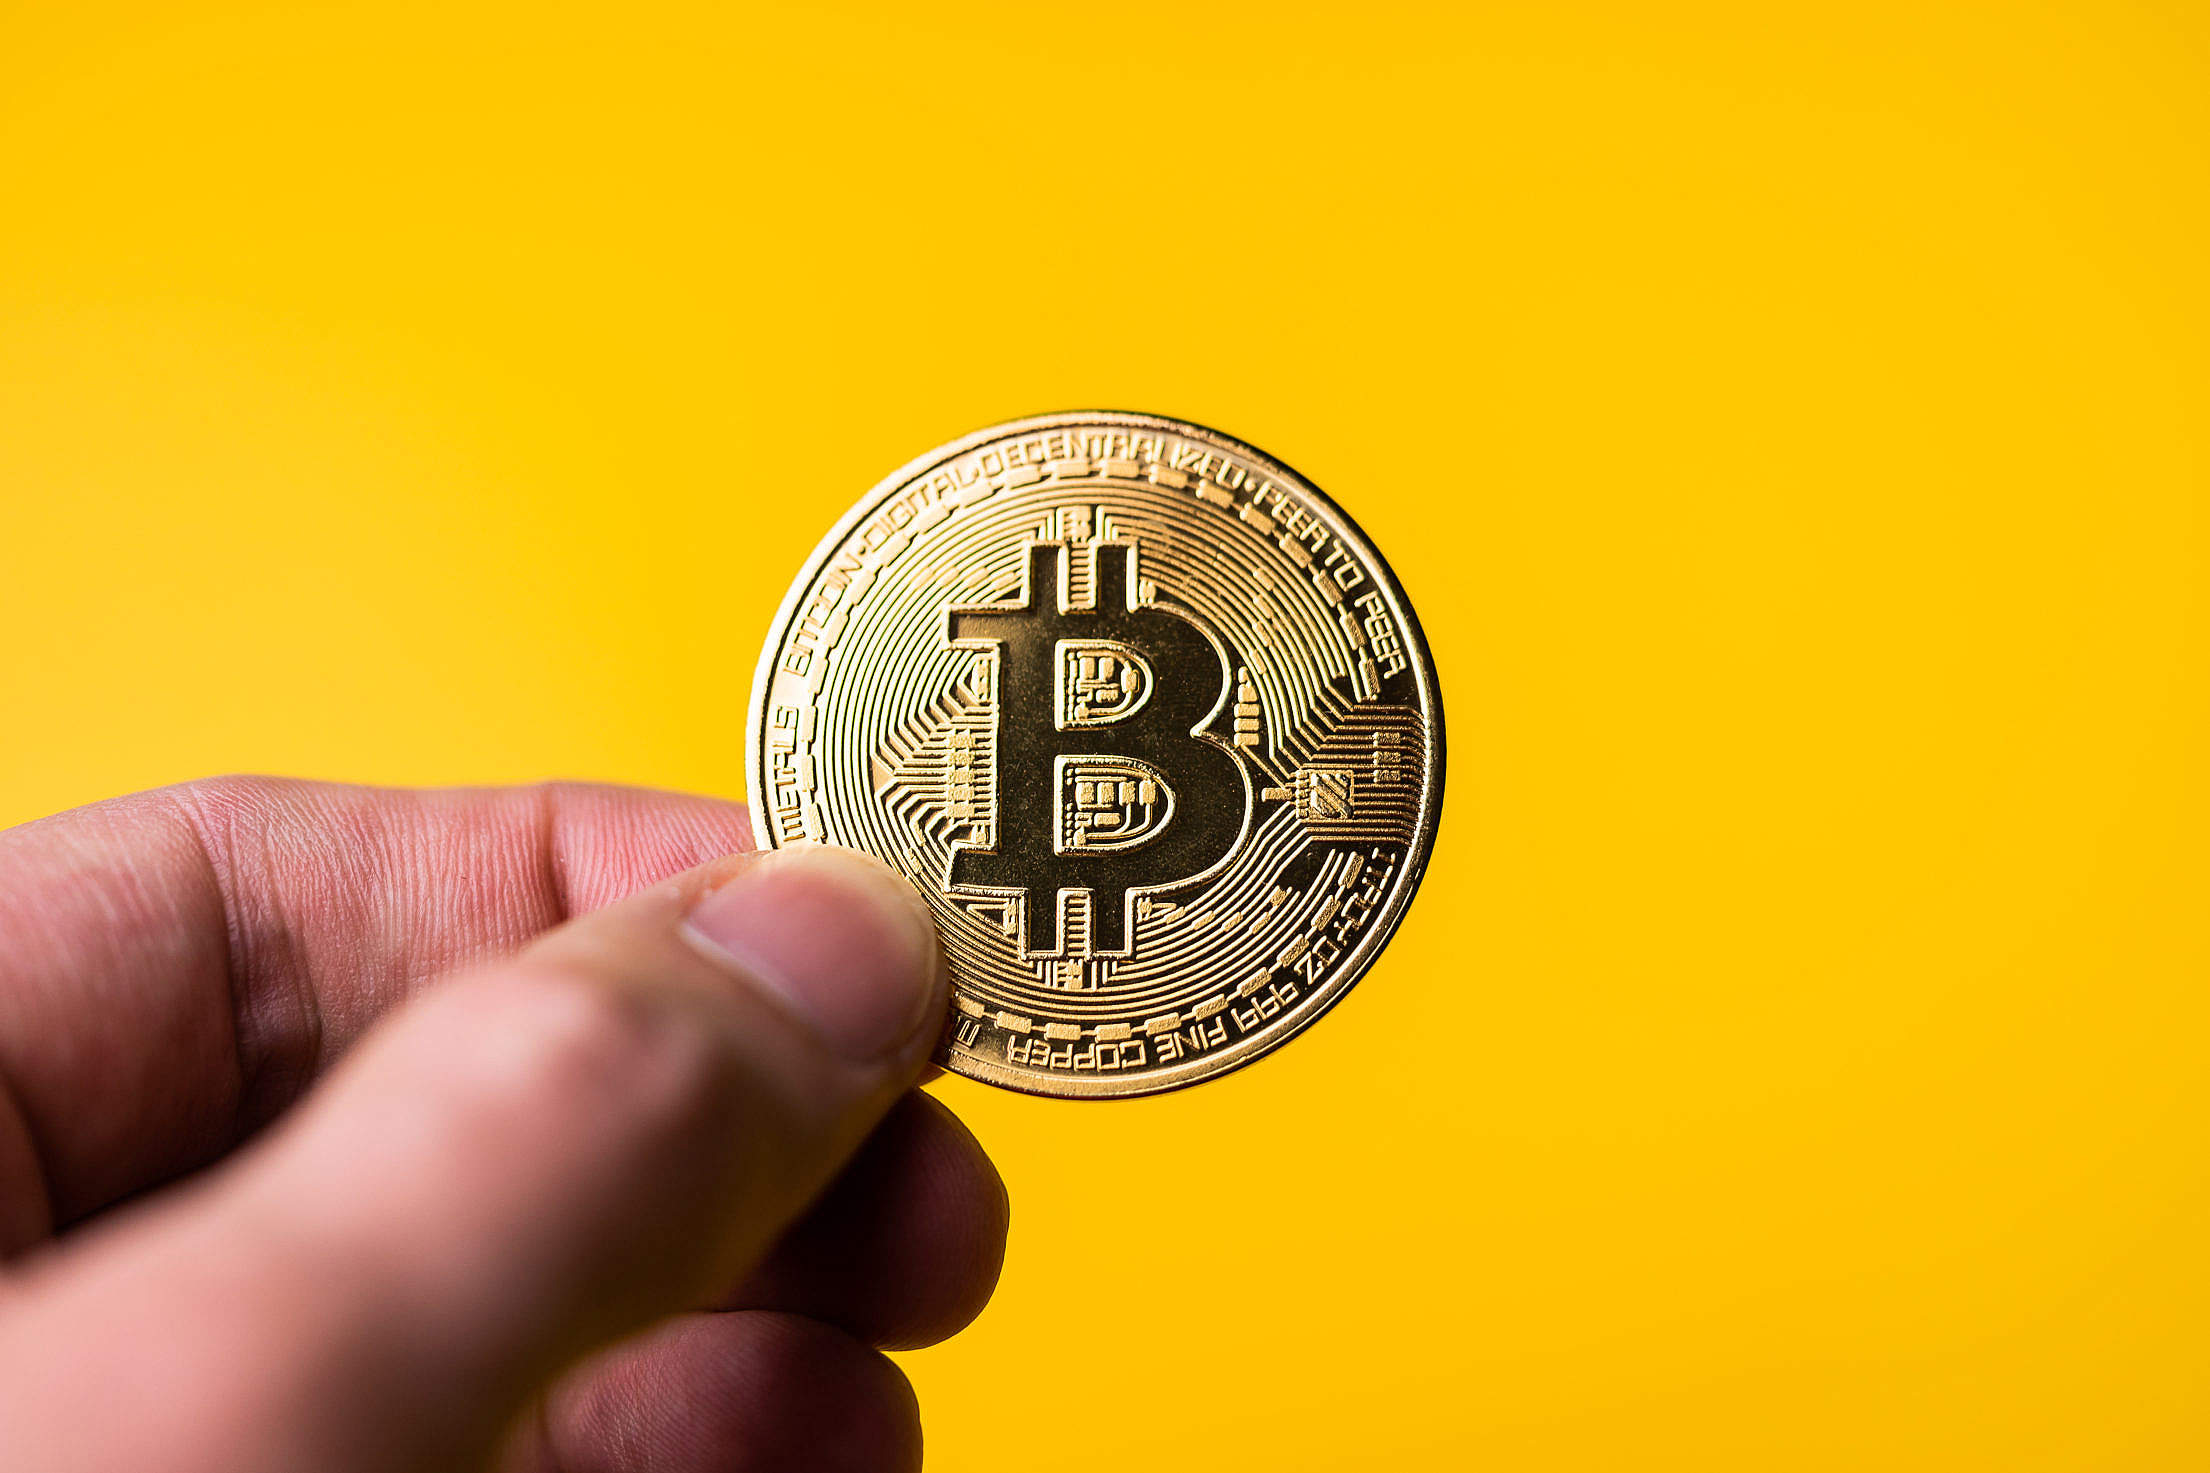 Download Bitcoin Golden Coin on Yellow Background Free Stock Photo